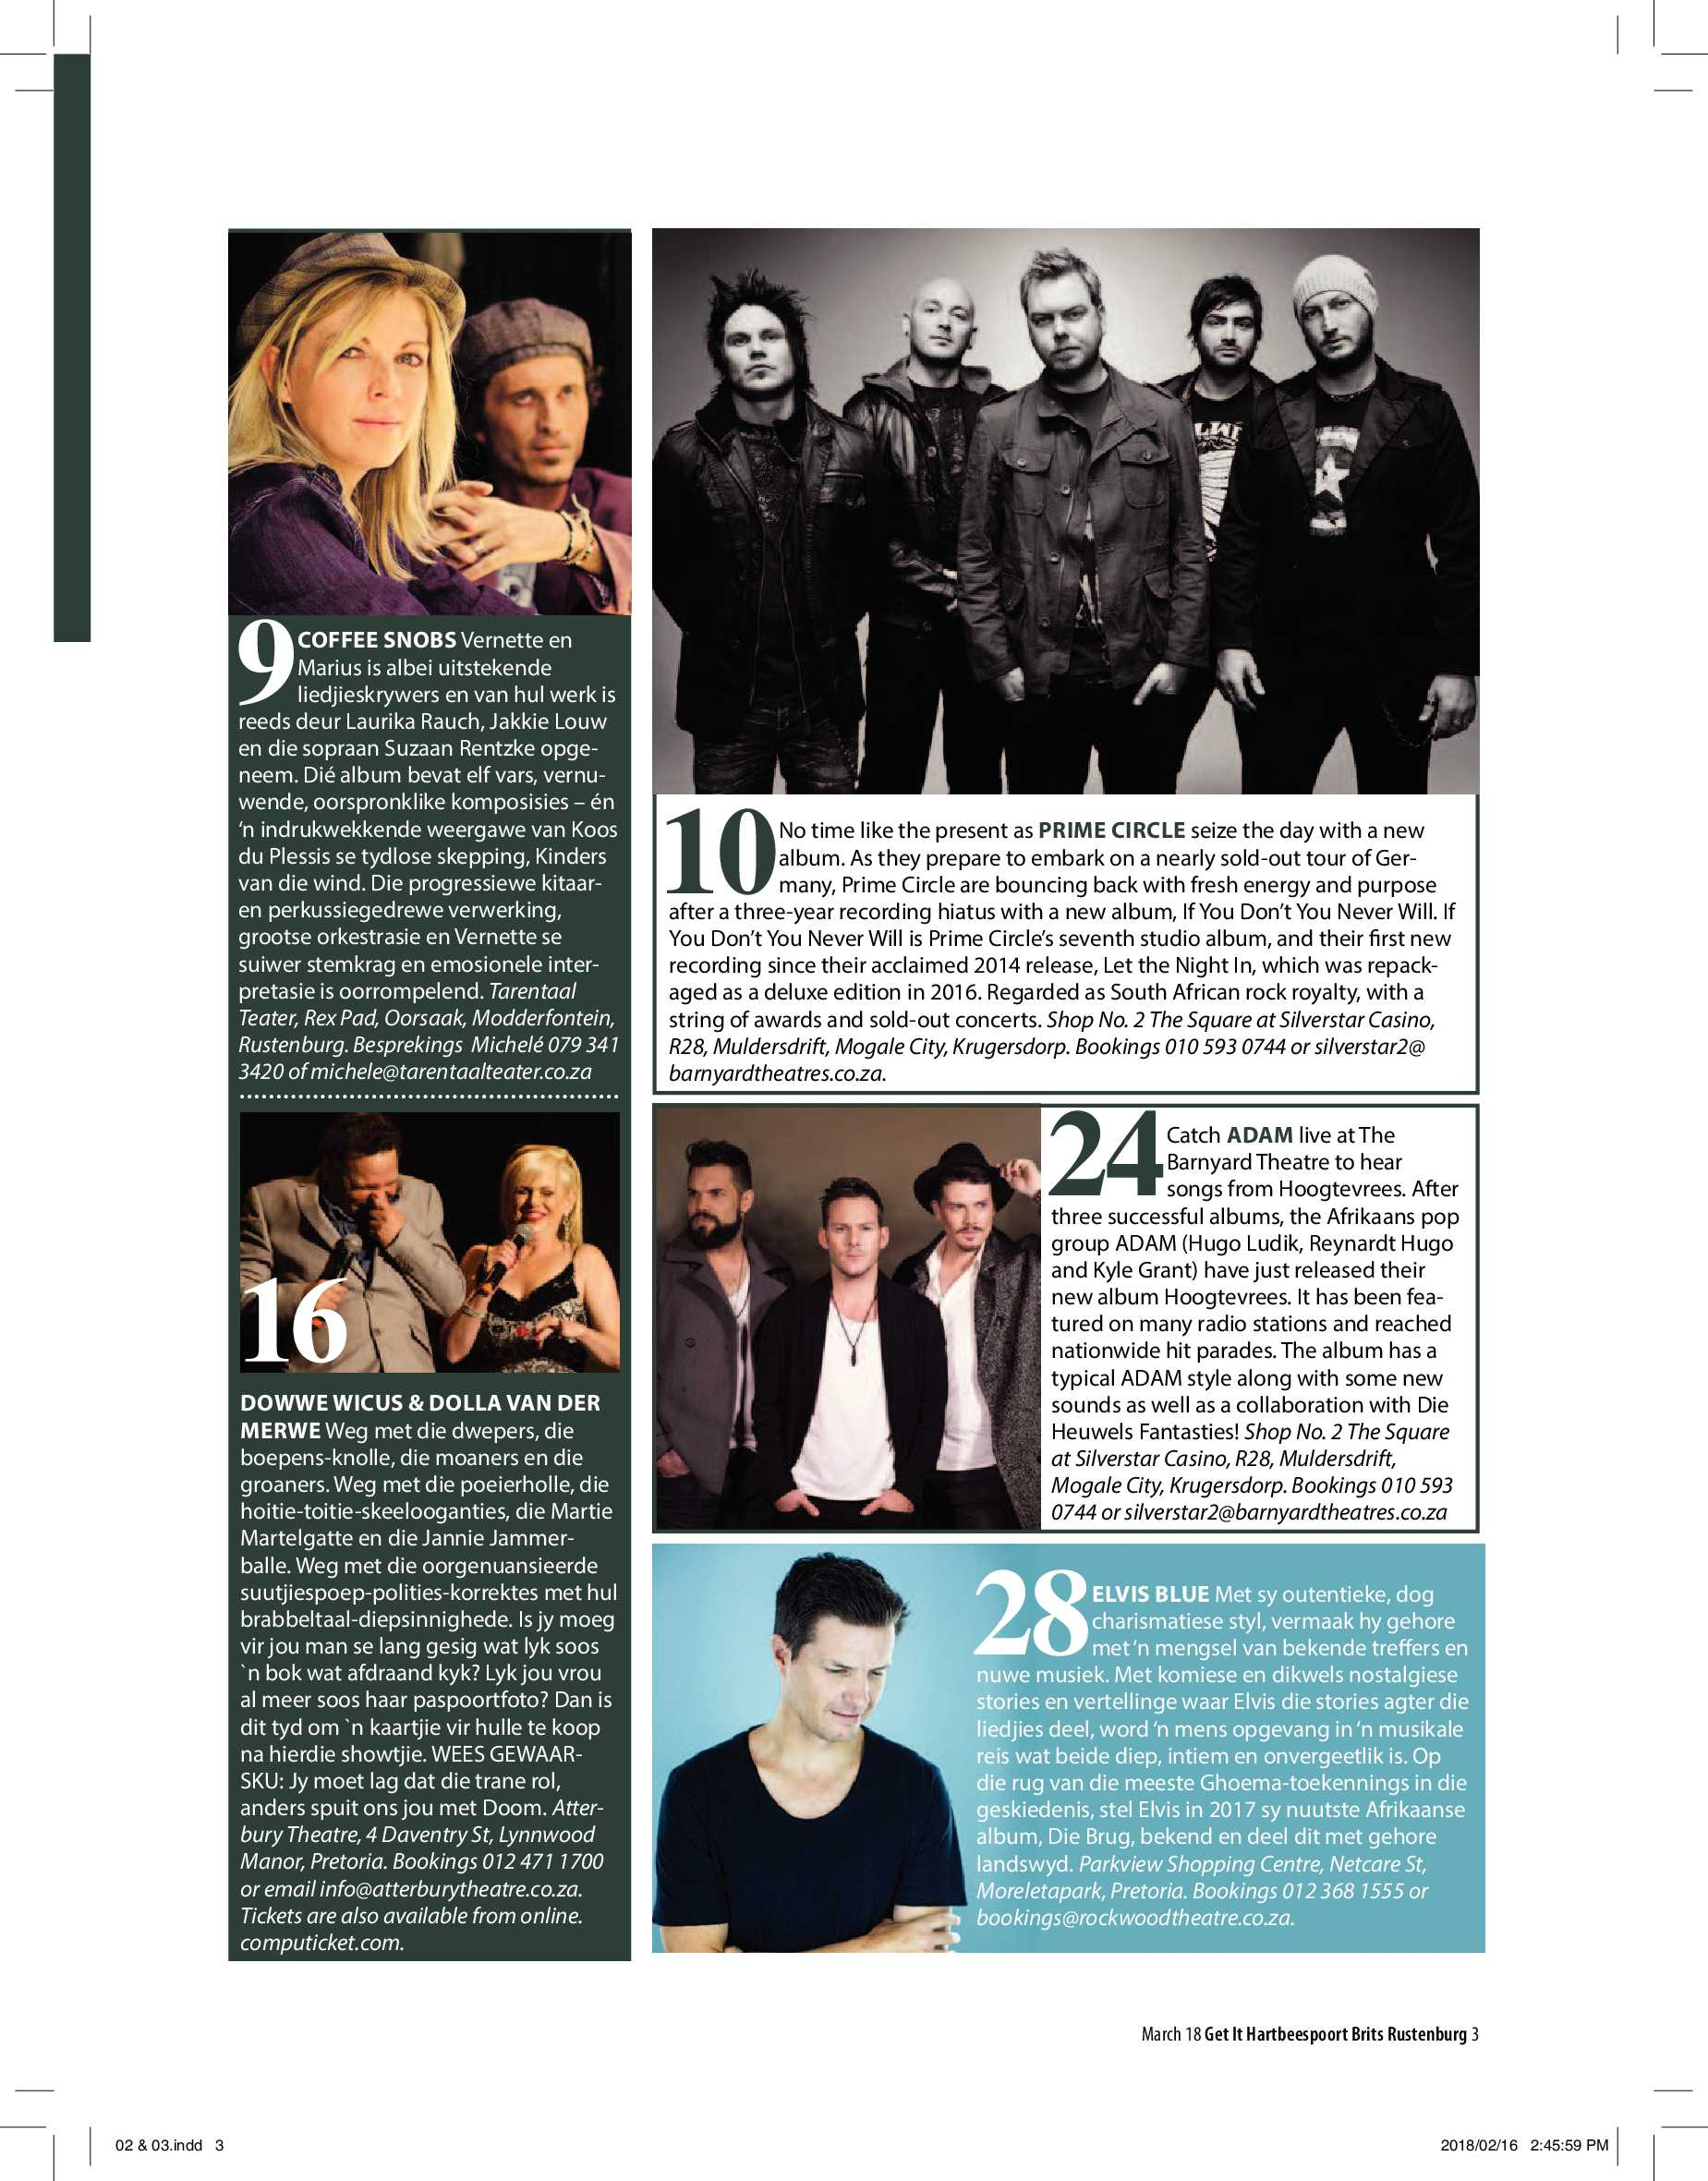 get-march-2018-epapers-page-5